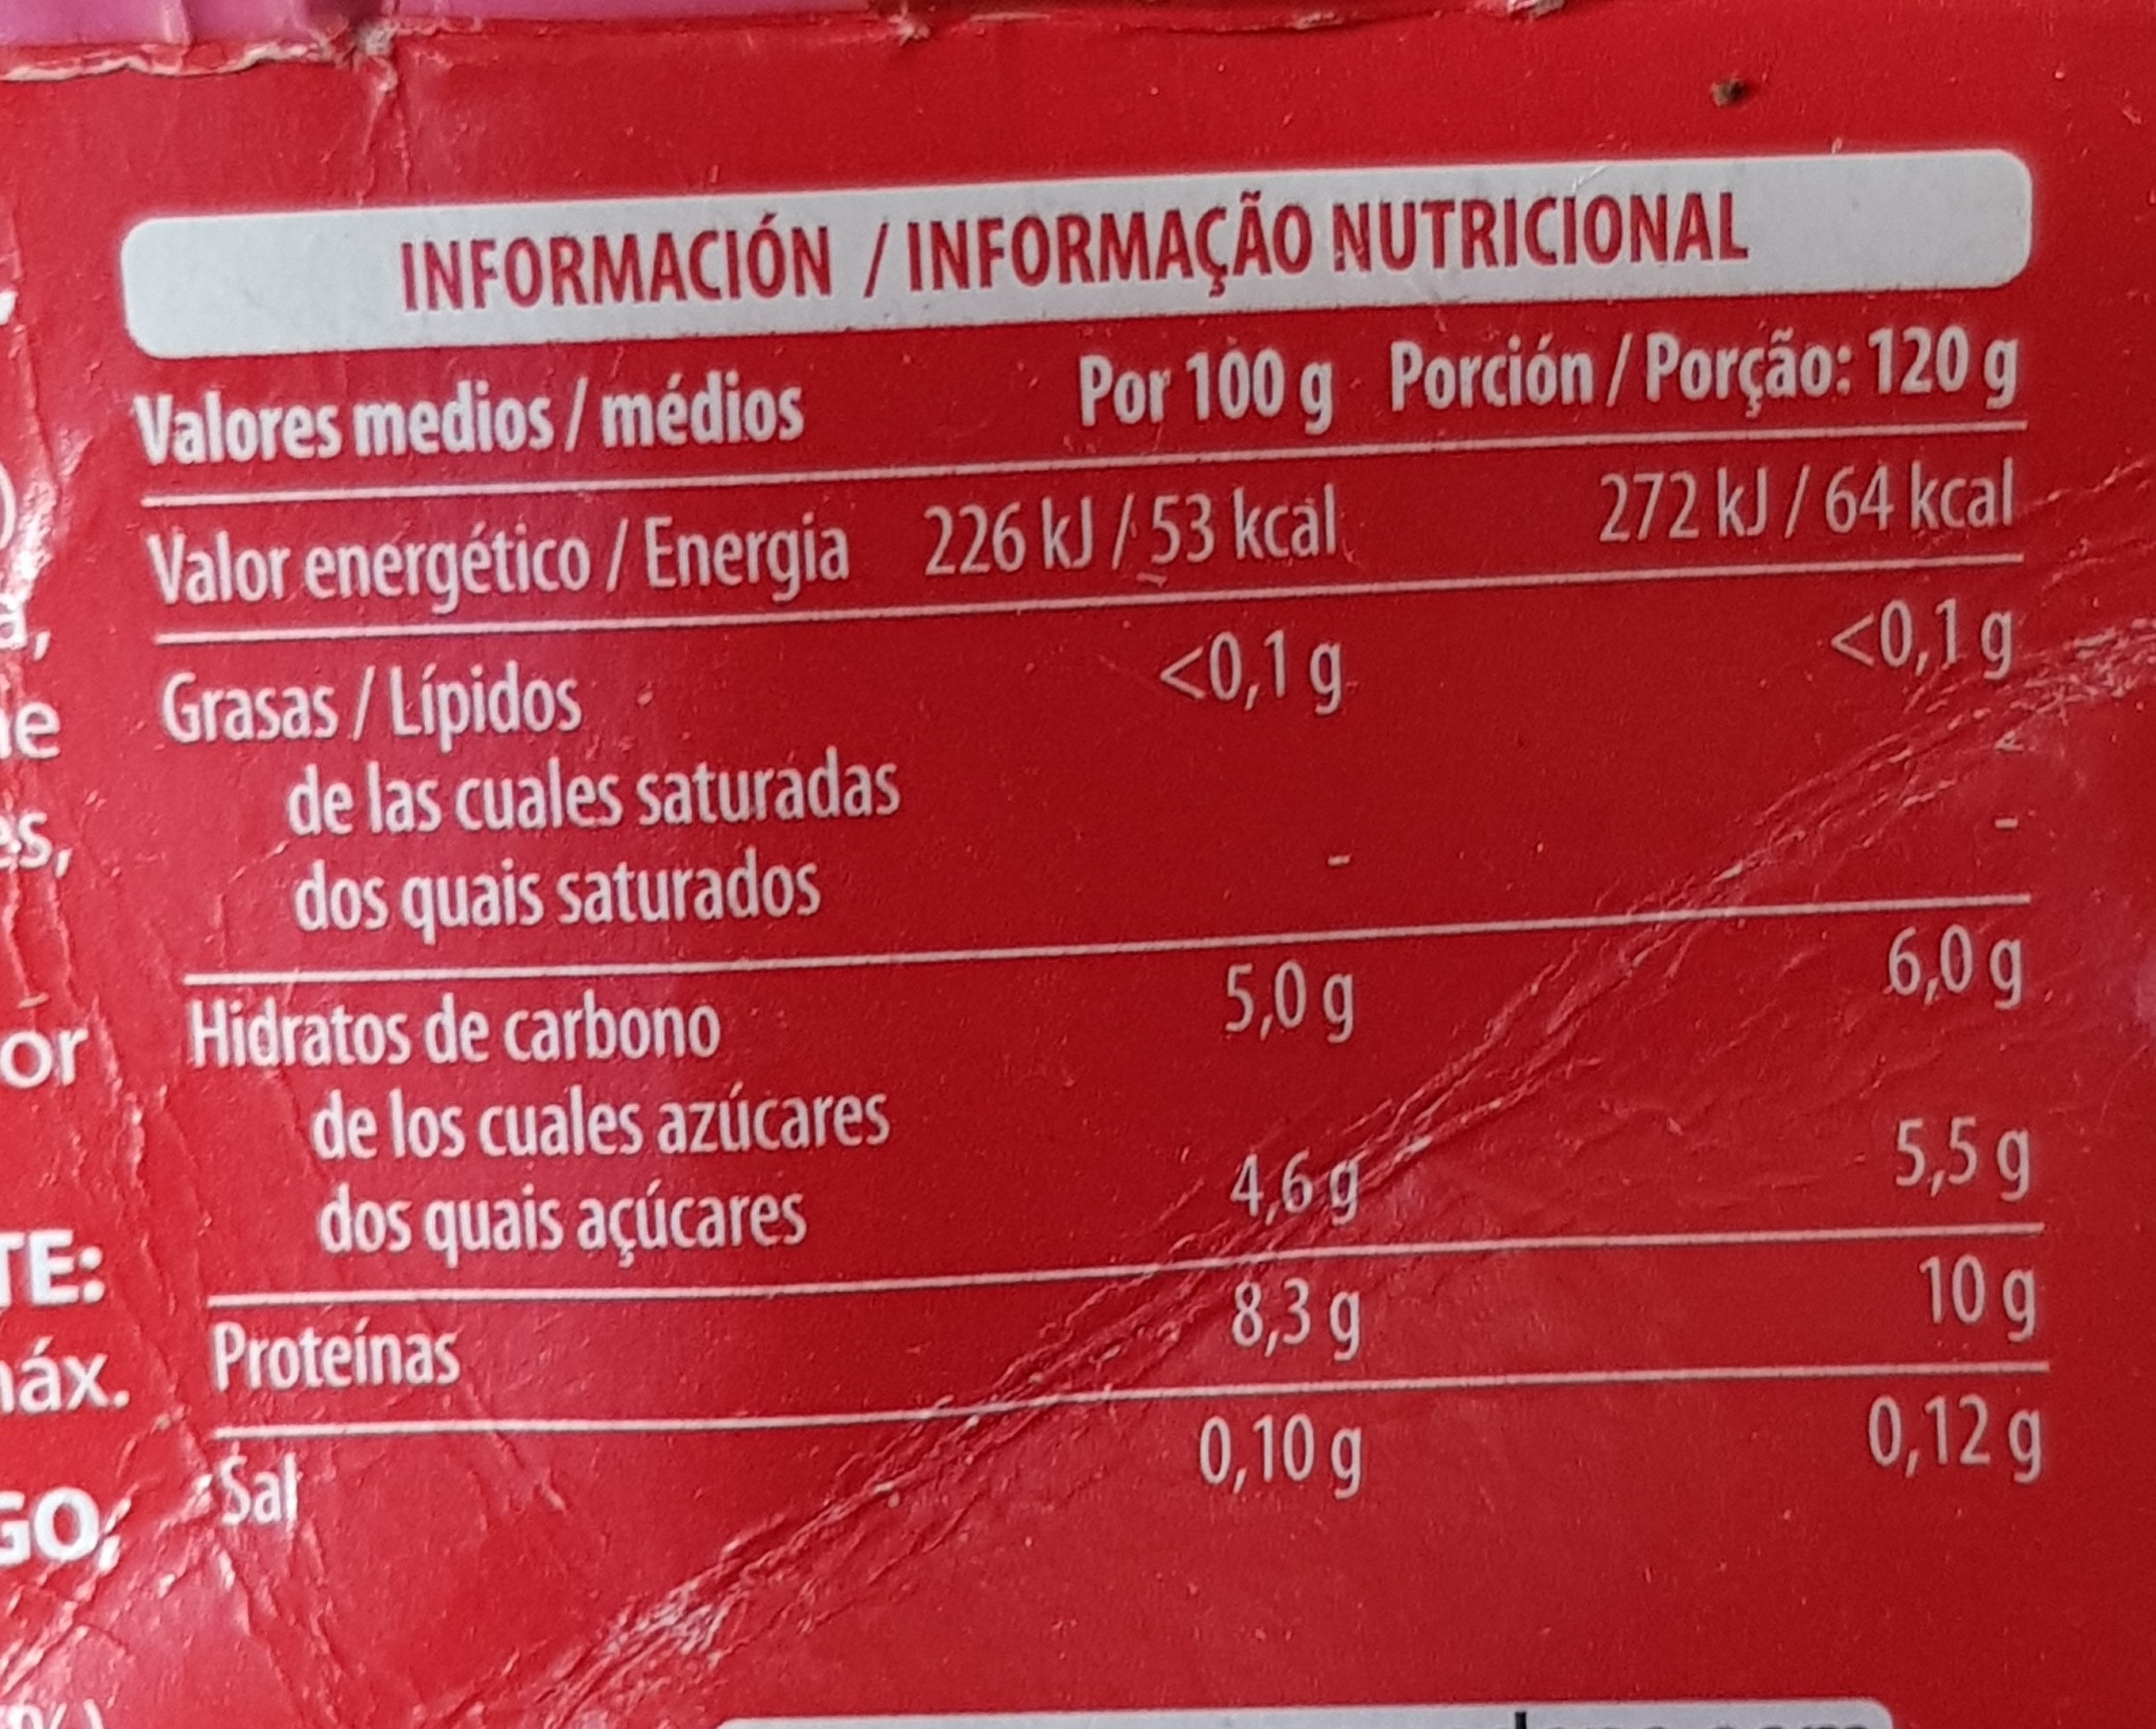 Yogur proteinas sabor fresa - Nutrition facts